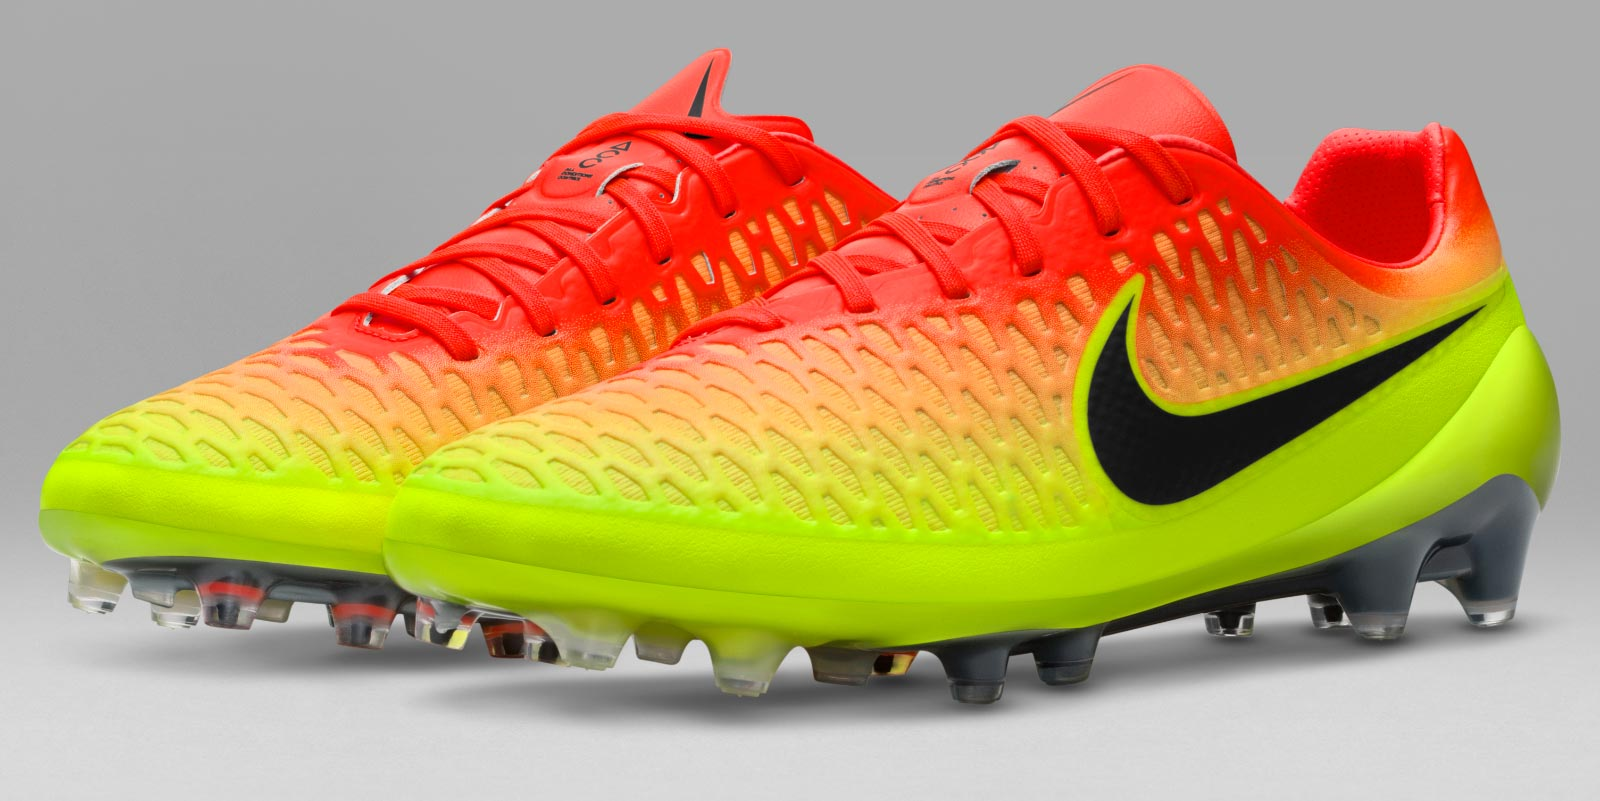 Nike Magista Futsal Shoes